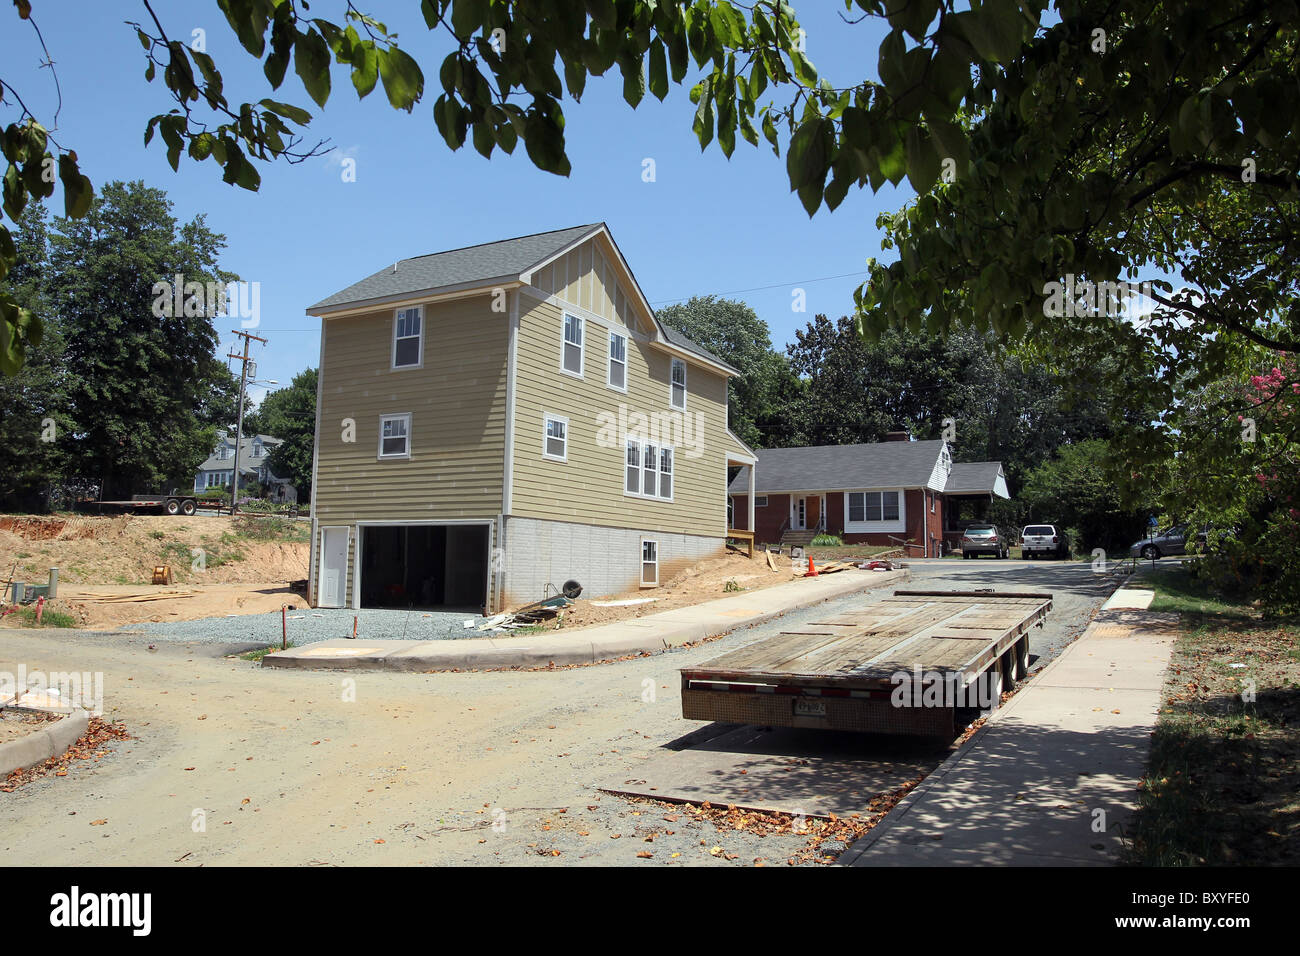 Habitat for Humanity, a nonprofit organization, helps build homes in Charlottesville, VA. - Stock Image